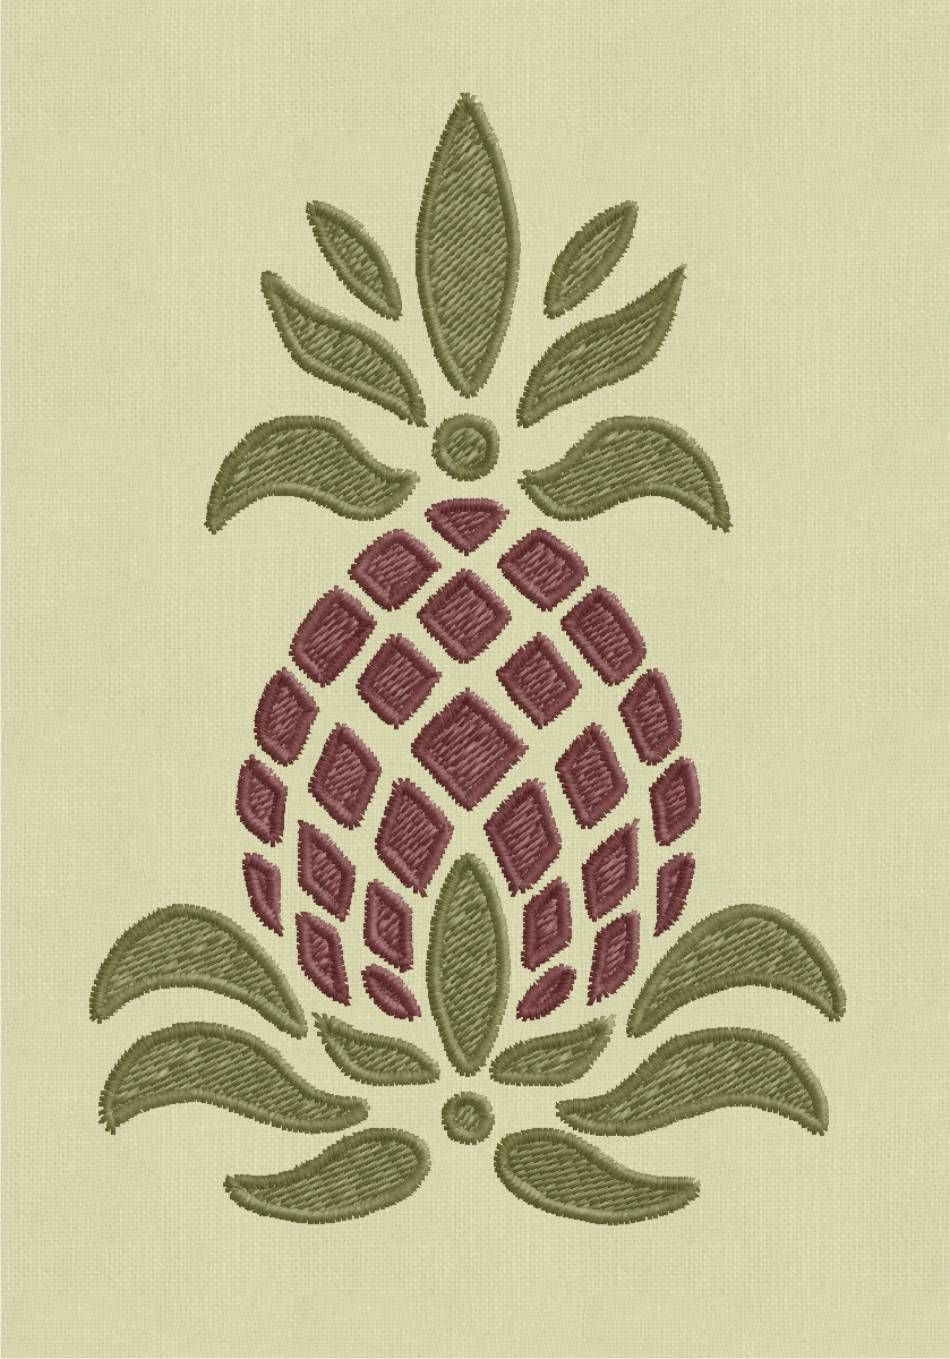 Pineapple stencils for wall southern stitch girl stencils pineapple stencils for wall southern stitch girl amipublicfo Image collections